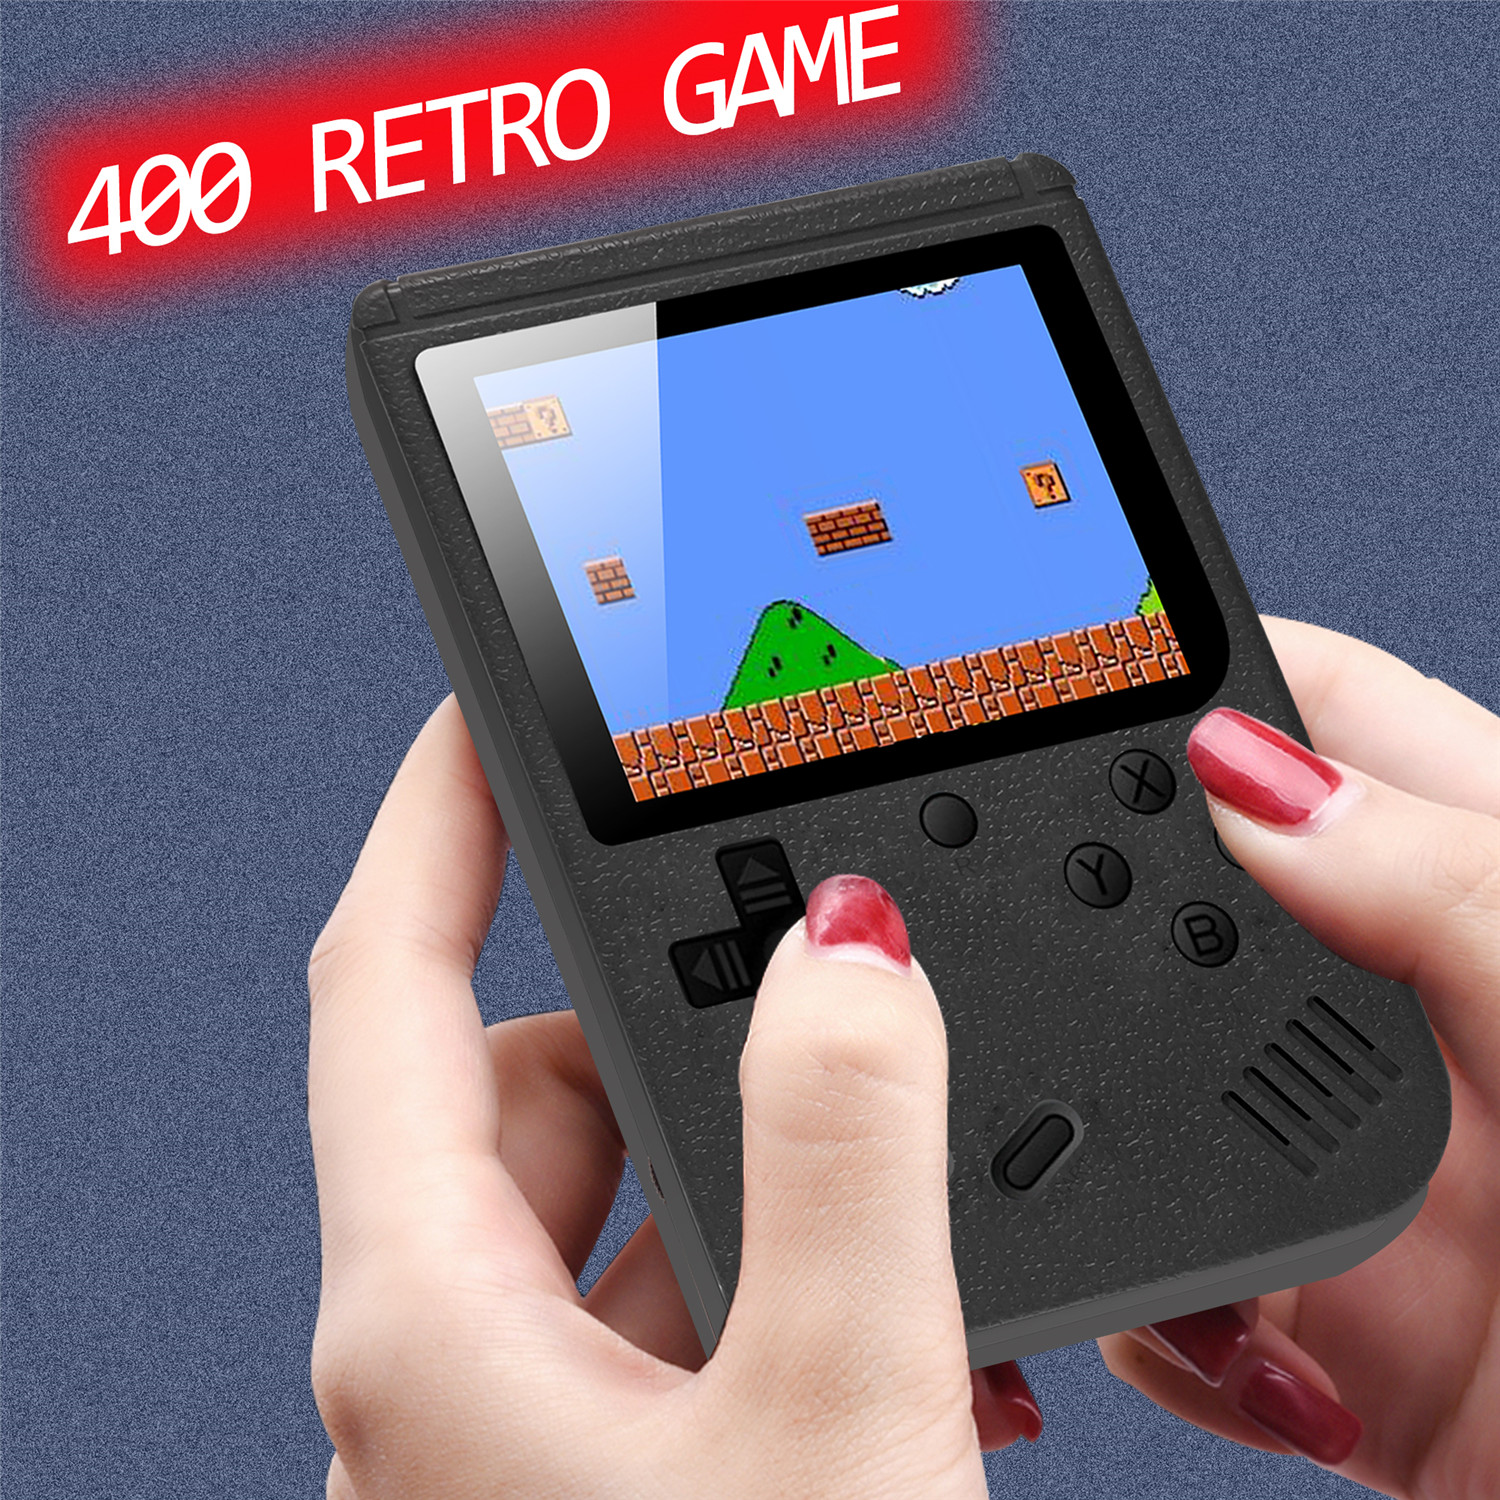 Game Concel 400 Games , Mini Video Game Console Built In 400 Classic Games Retro 8 Bit 3.0 Inch Games AV Out Portable Handheld G